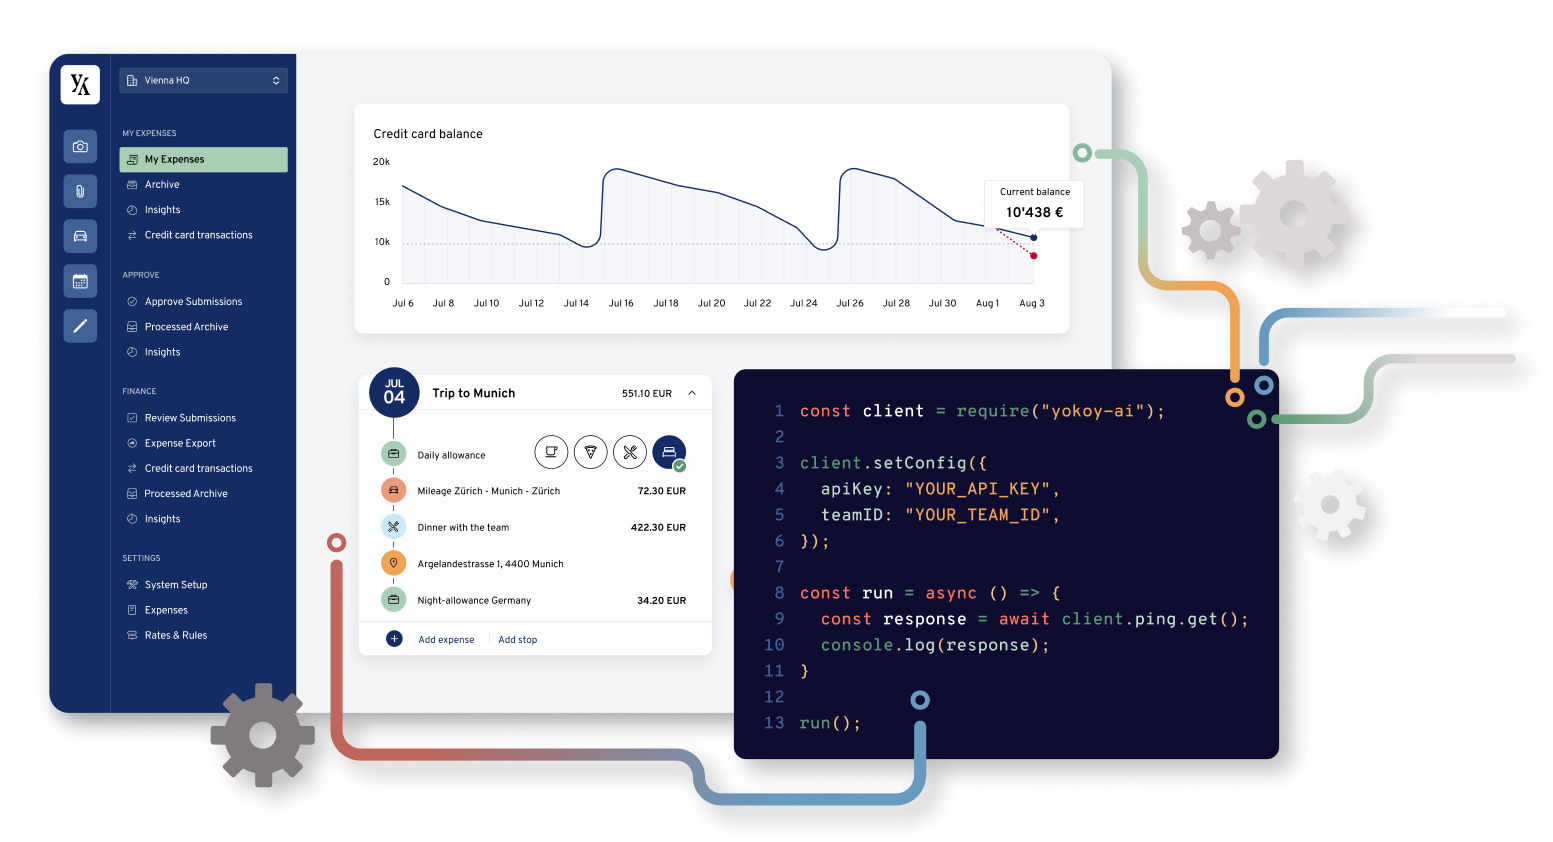 Open APi Integration dashboard and code